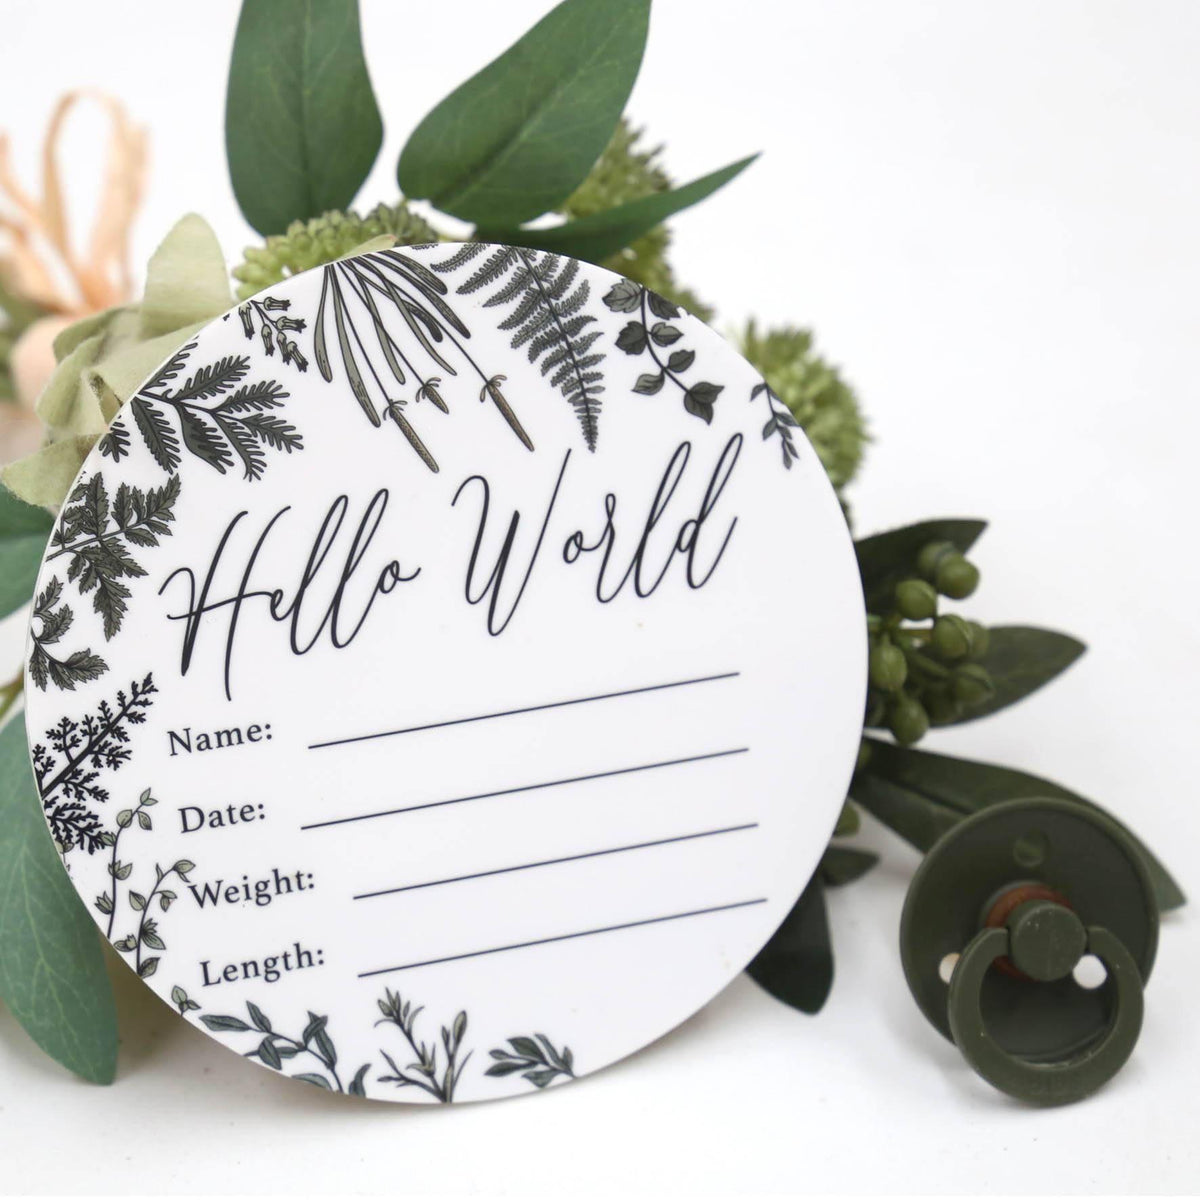 Birth Announcement Card- Hello World White Acrylic Printed Wild Leaf-Birth Announcement-CMC Gold